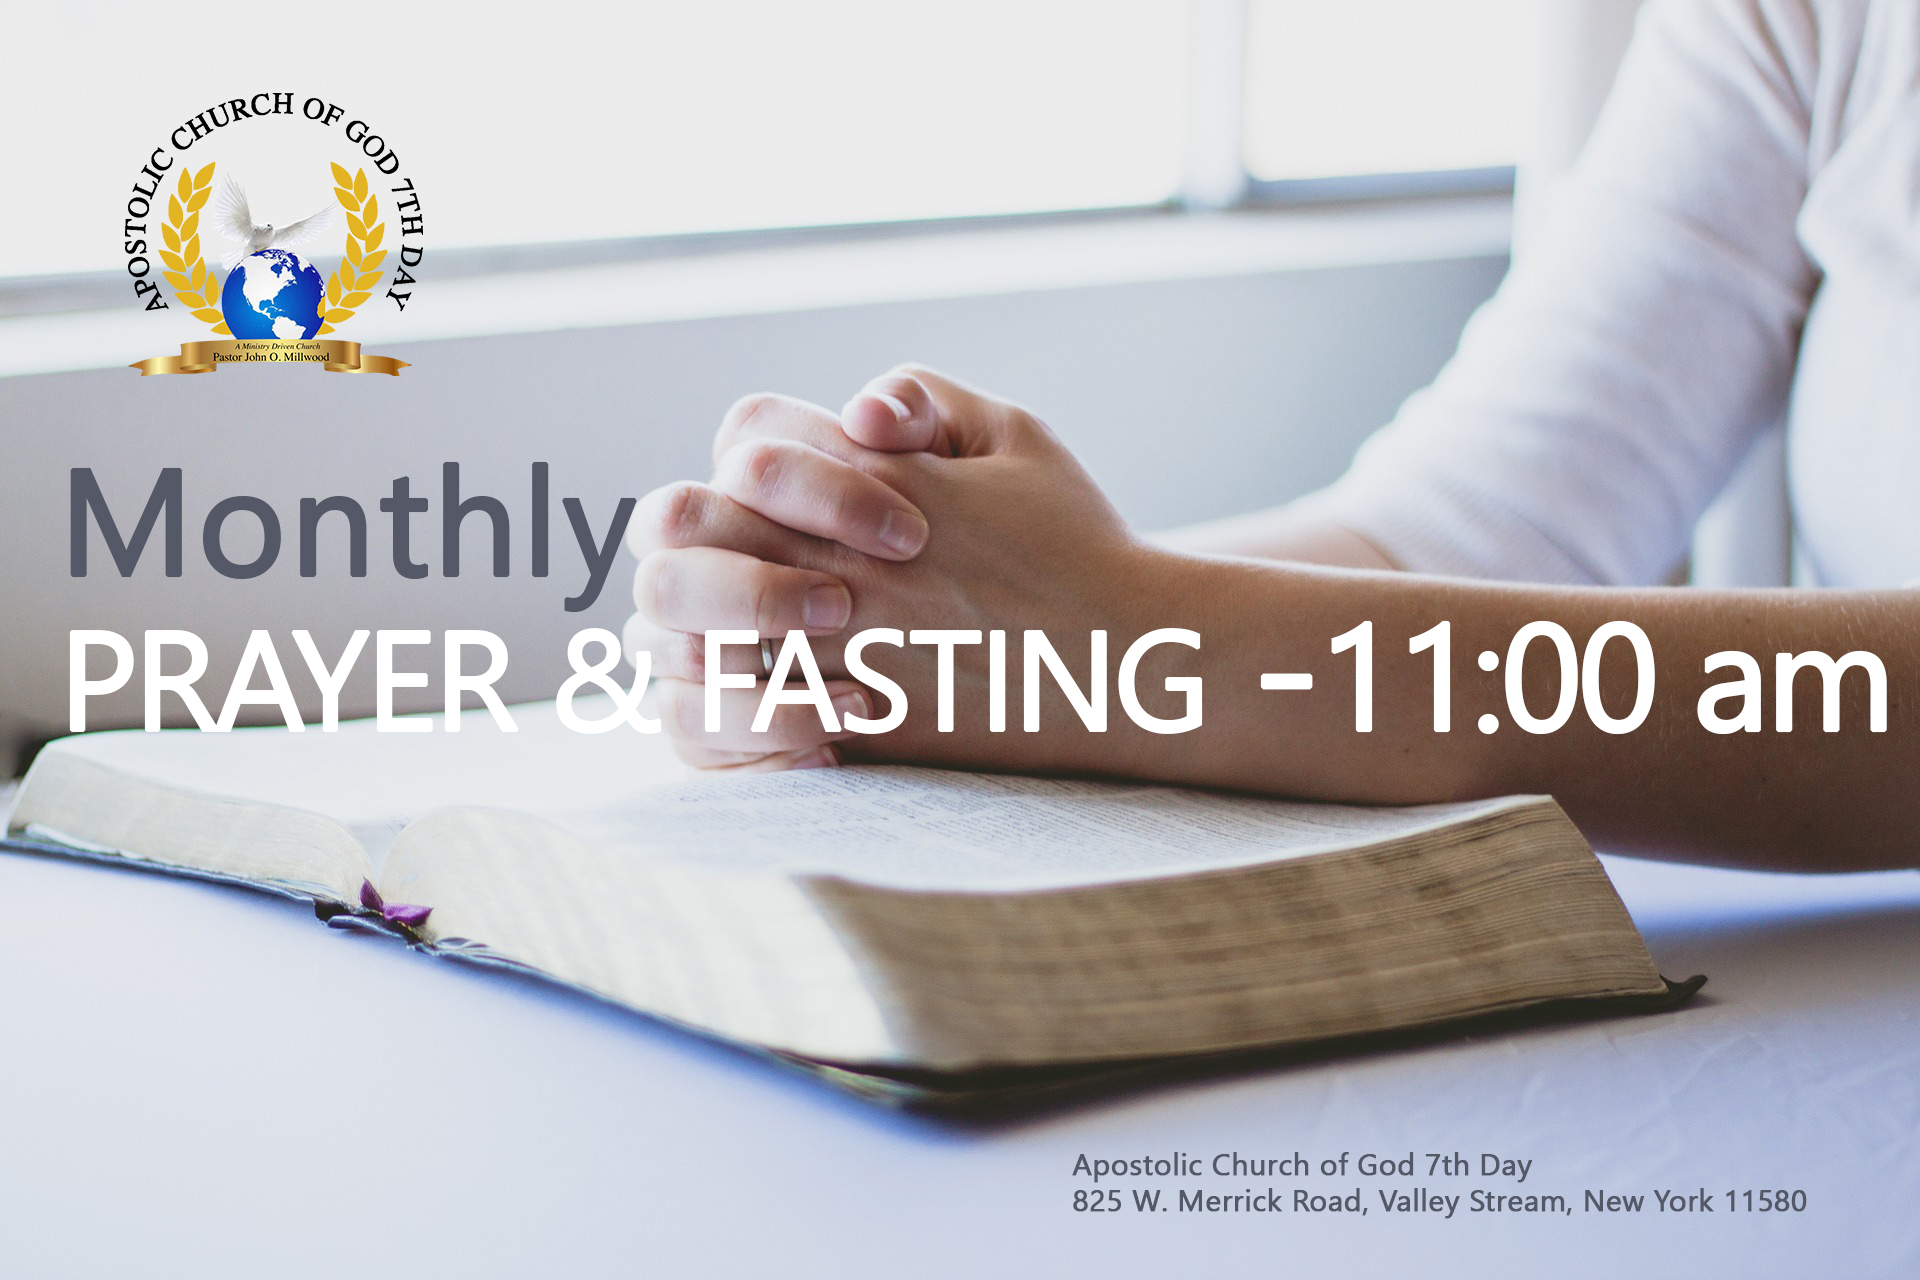 Apostolic-Church-of-God-7th-Day-Montly-Prayer-and-Fasting-Service